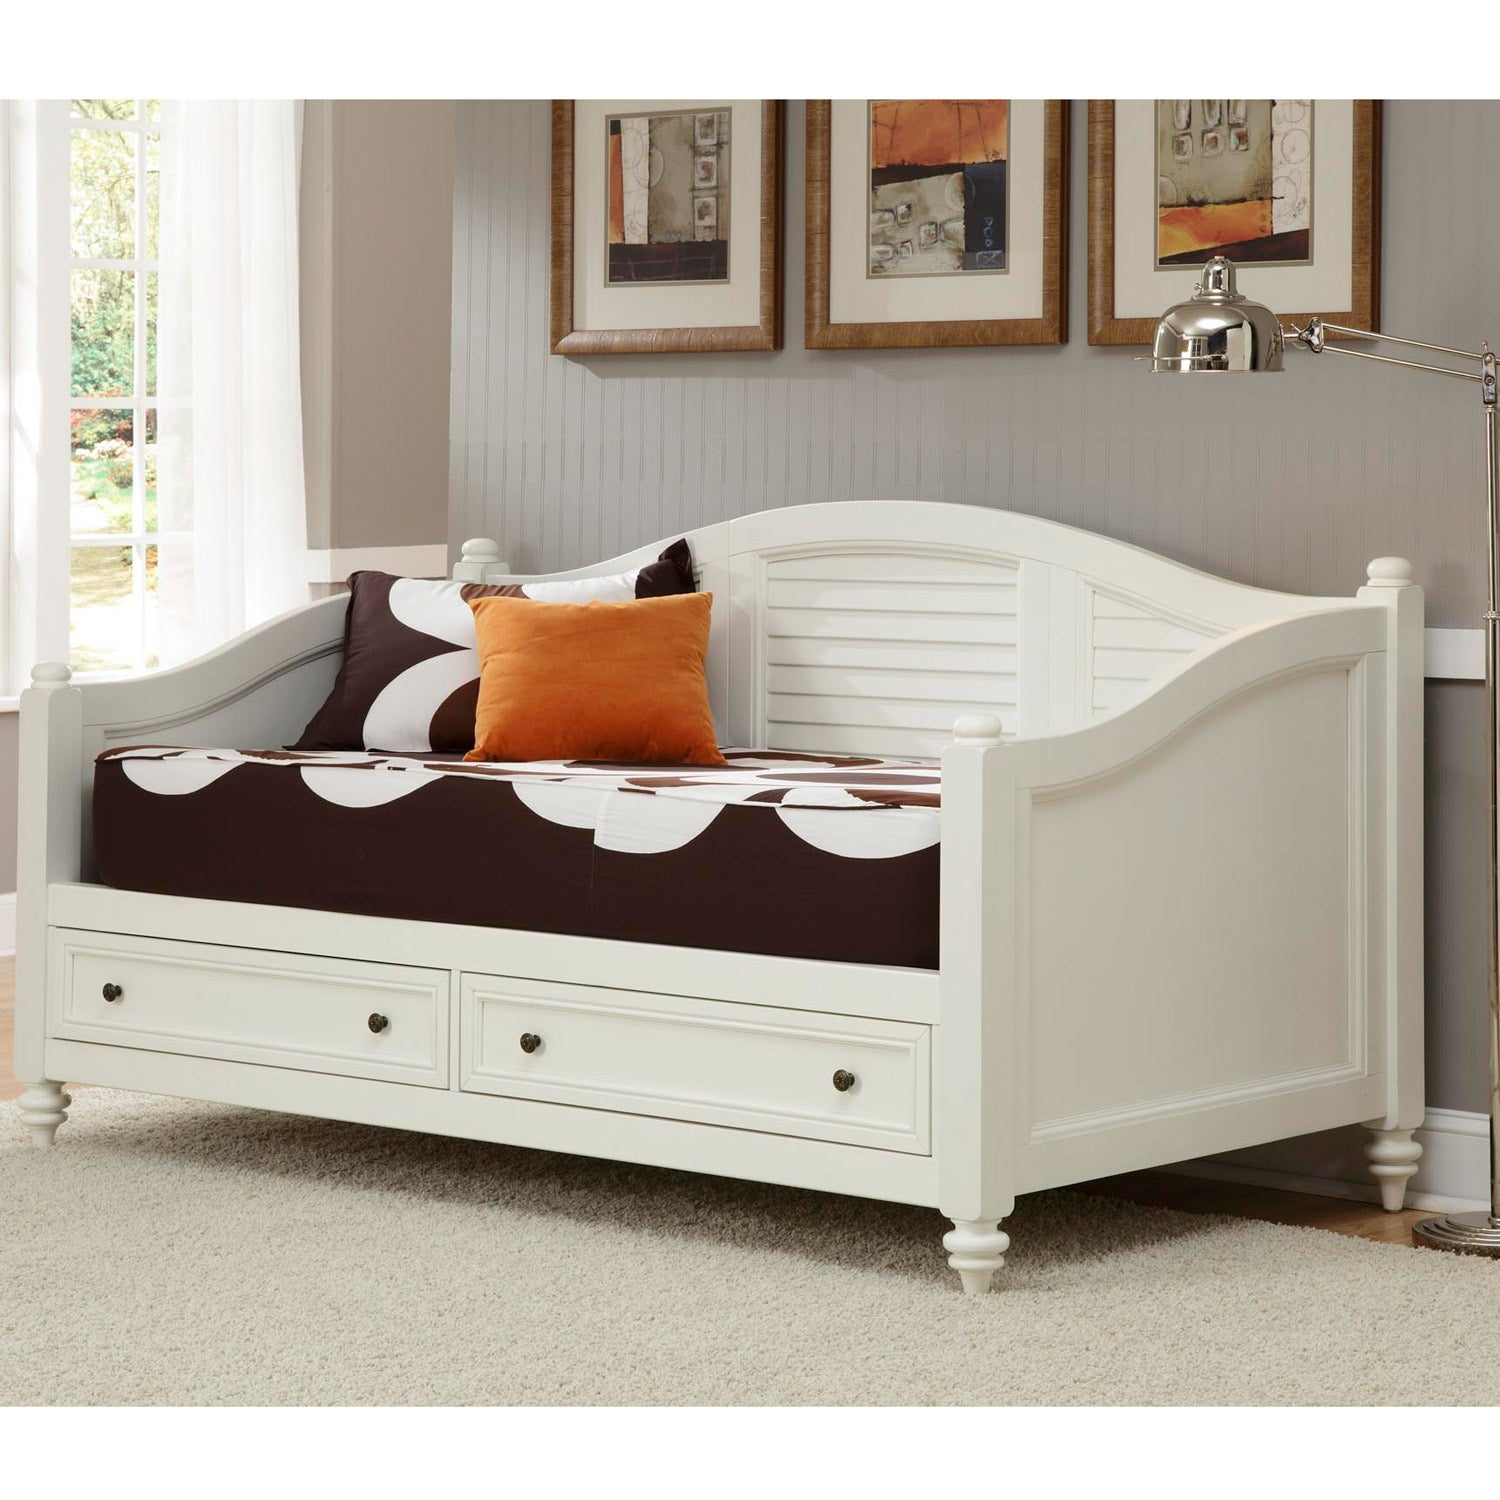 Home styles bermuda brushed white finish twin size daybed for Bed styles images